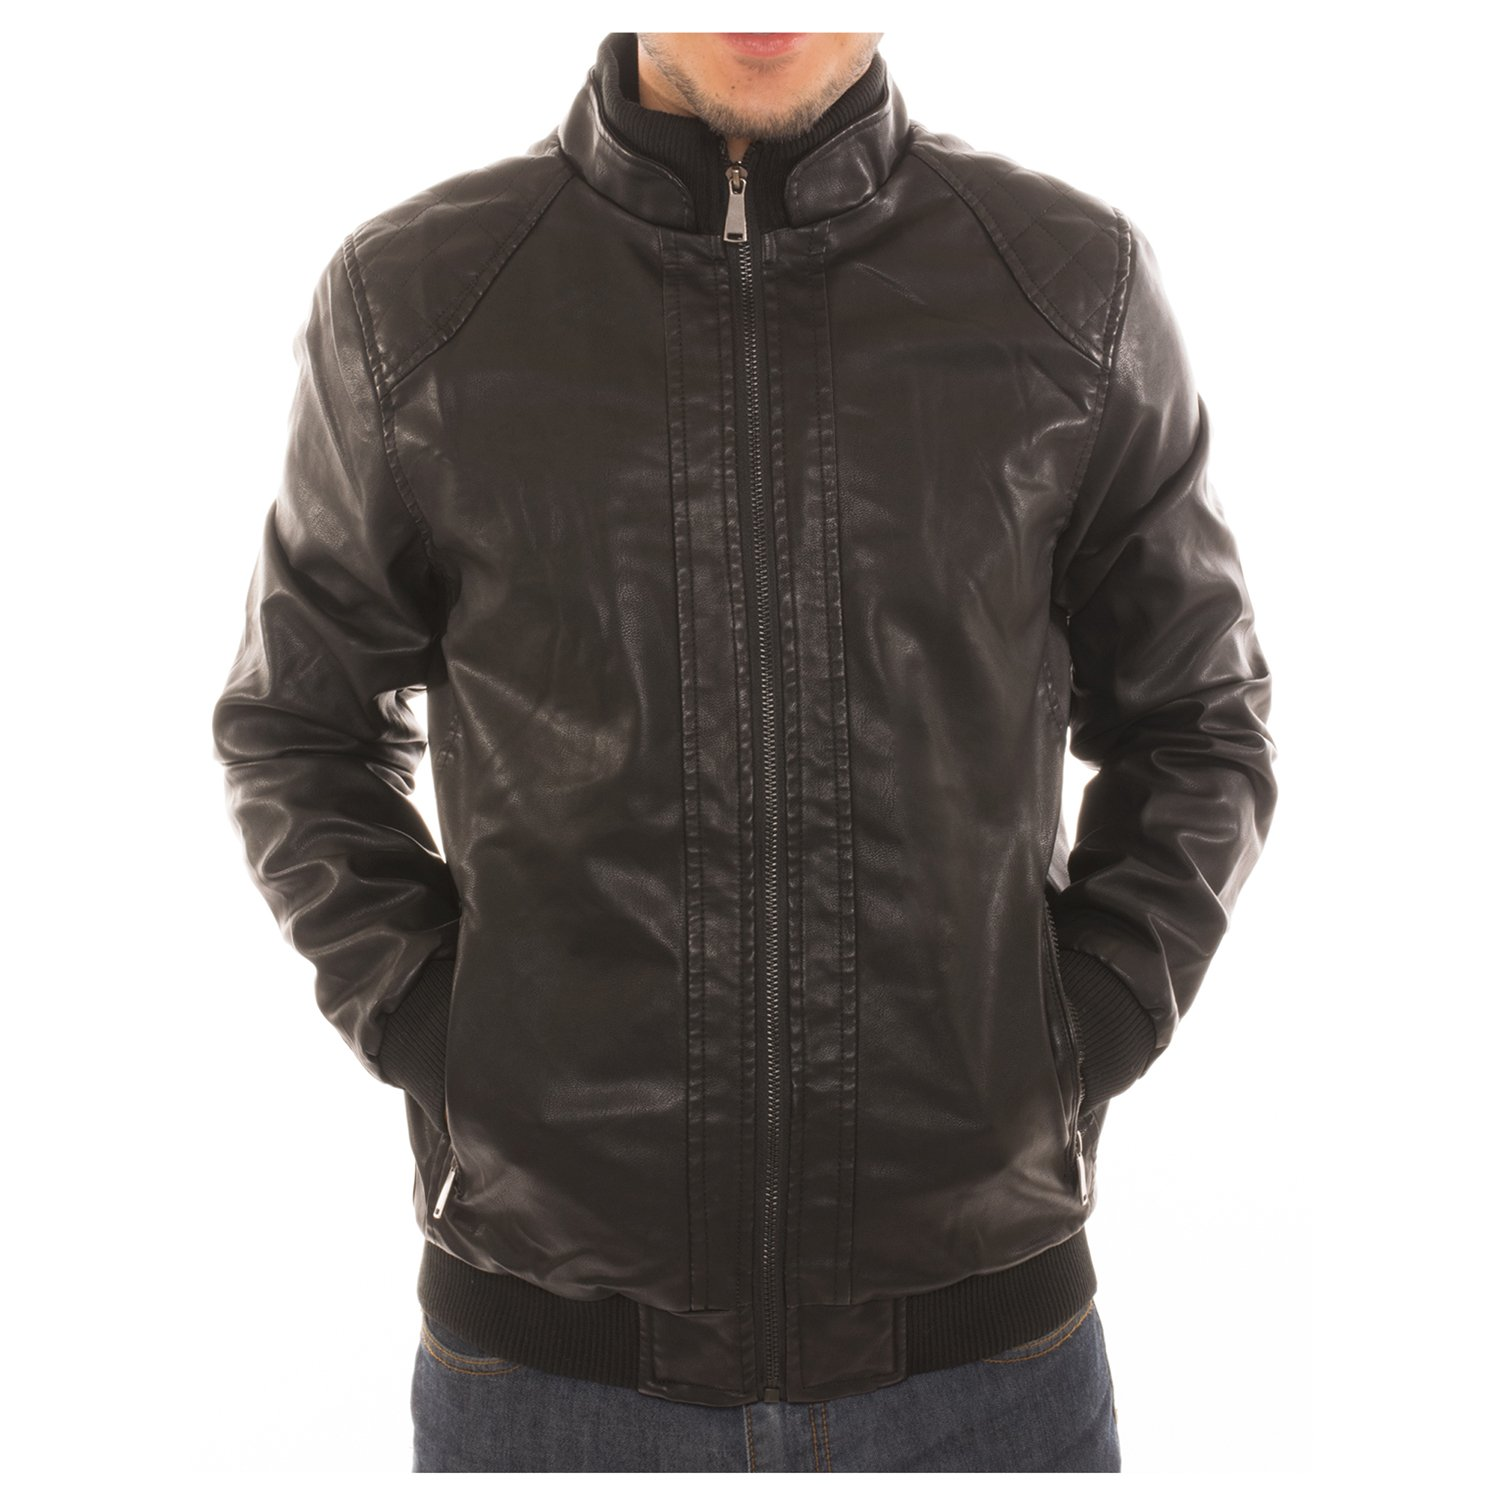 Men's Motorcycle Bomber Faux Leather Jacket Fleece Lined with Zippered Pockets - Black - S